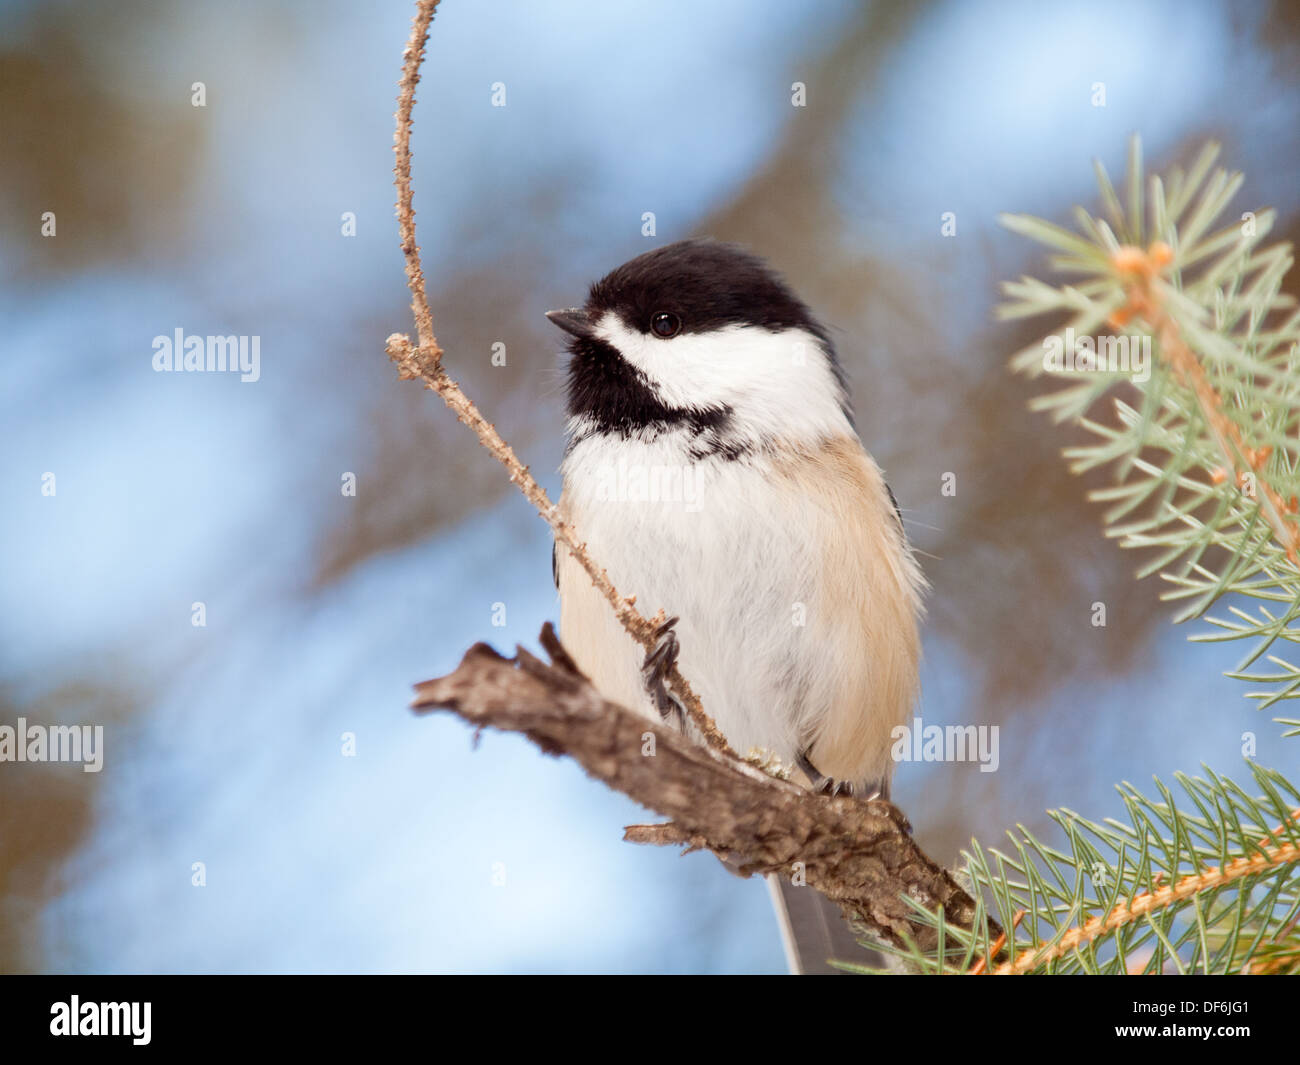 A very cute Black-capped Chickadee (Poecile atricapillus) in winter.  Edmonton, Alberta, Canada. - Stock Image